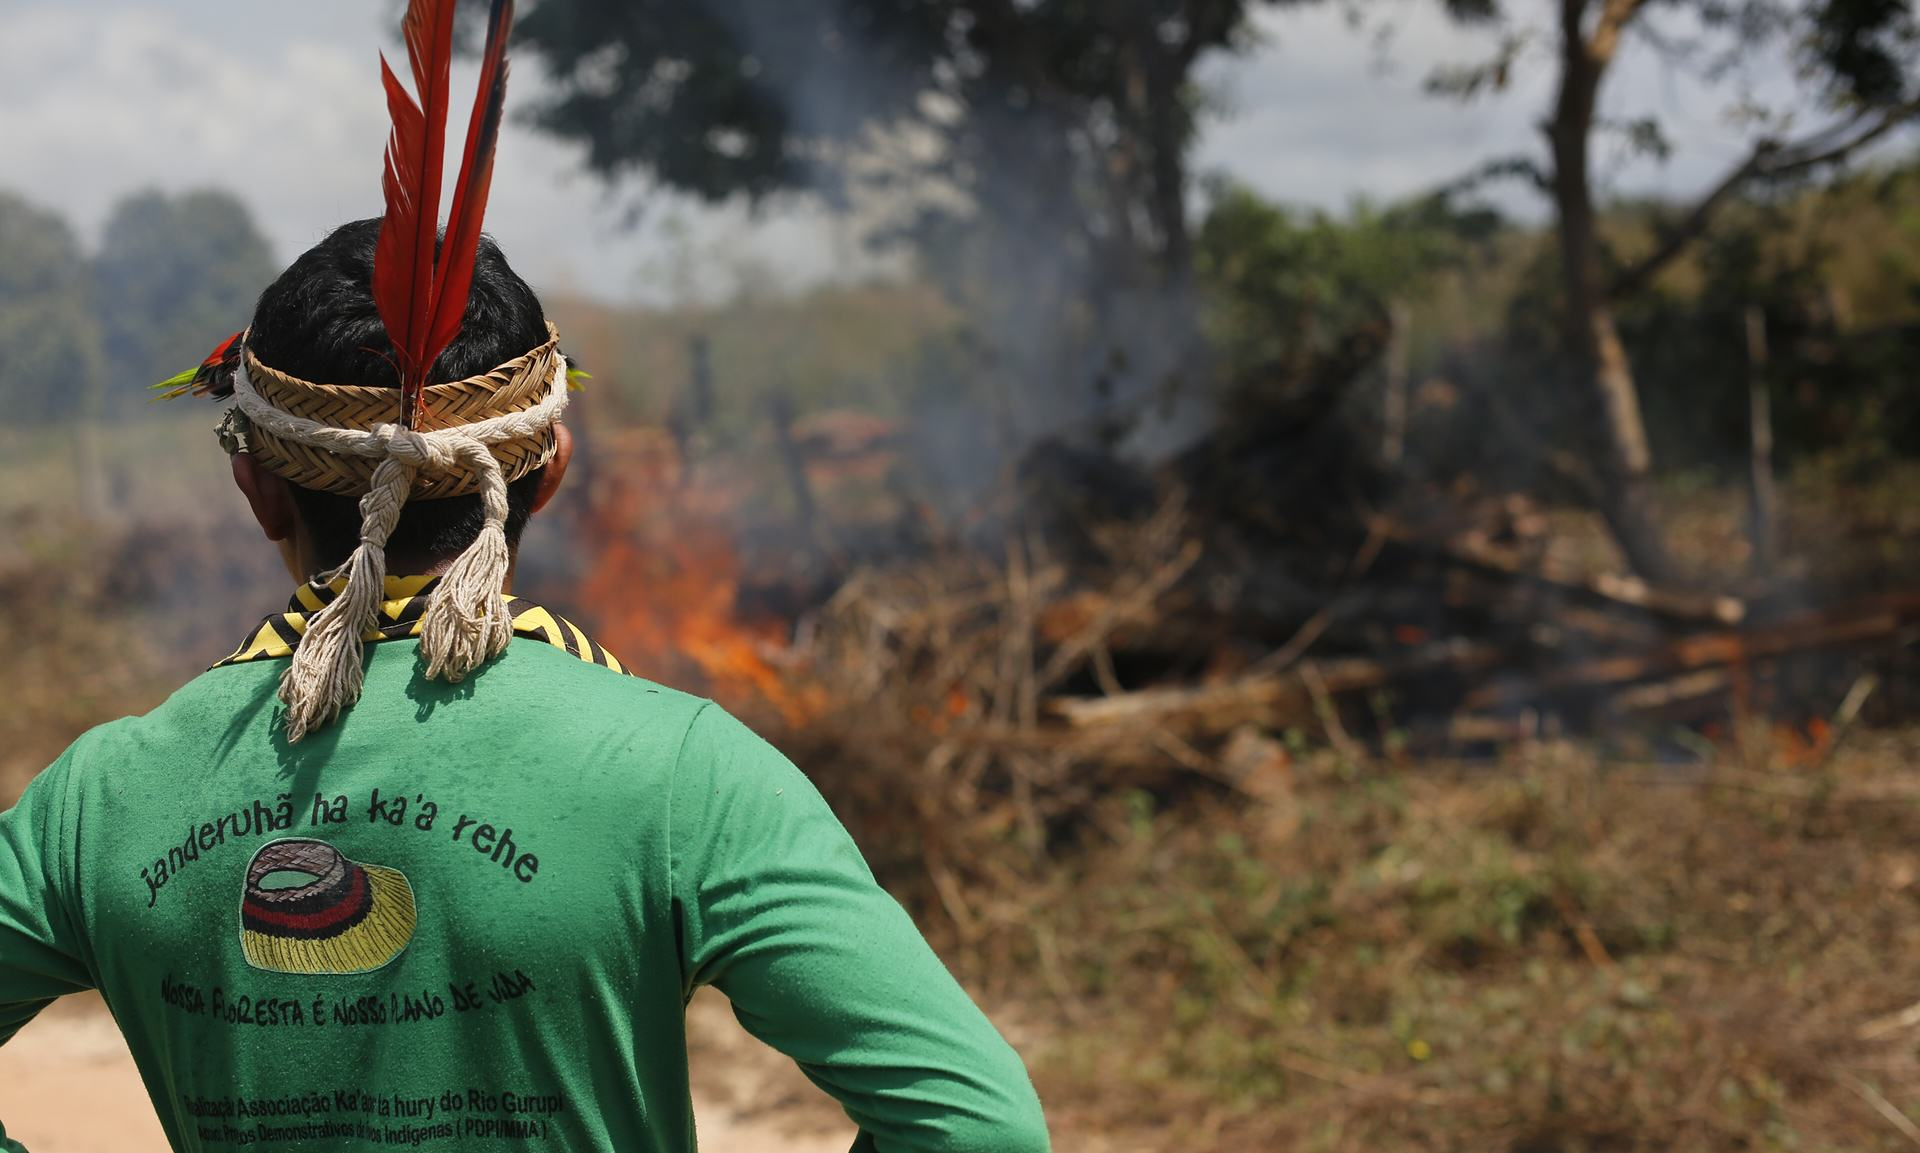 This Amazon Tribe Use Unusual Methods To Protect Their Land From Illegal Loggers UNILAD Ka'apor Indians set fire to illegally cut logs found near the indigenous territory. Photograph Lunae ParrachoGreenpeace7